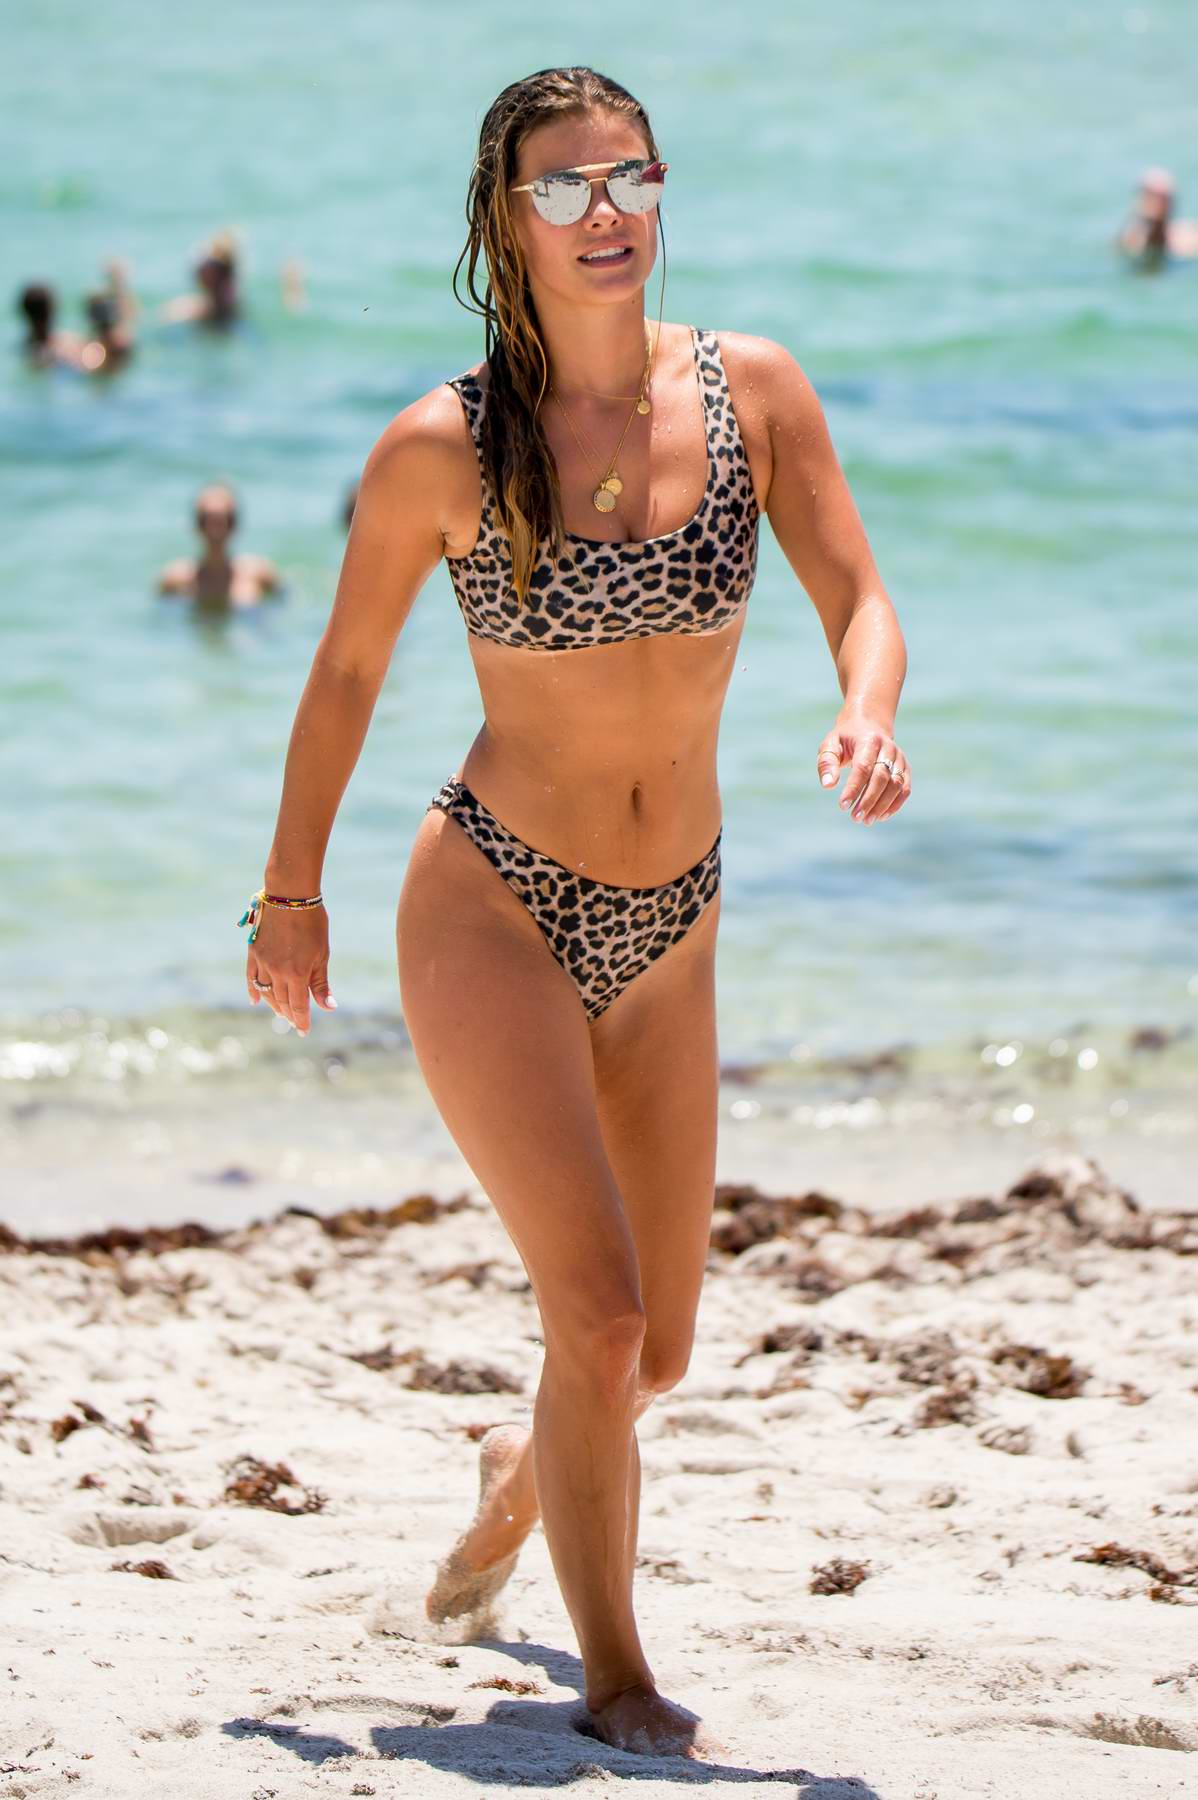 Nina Agdal shows off her beach body in a leopard print bikini while she cools down in the ocean with her friends in Miami, Florida